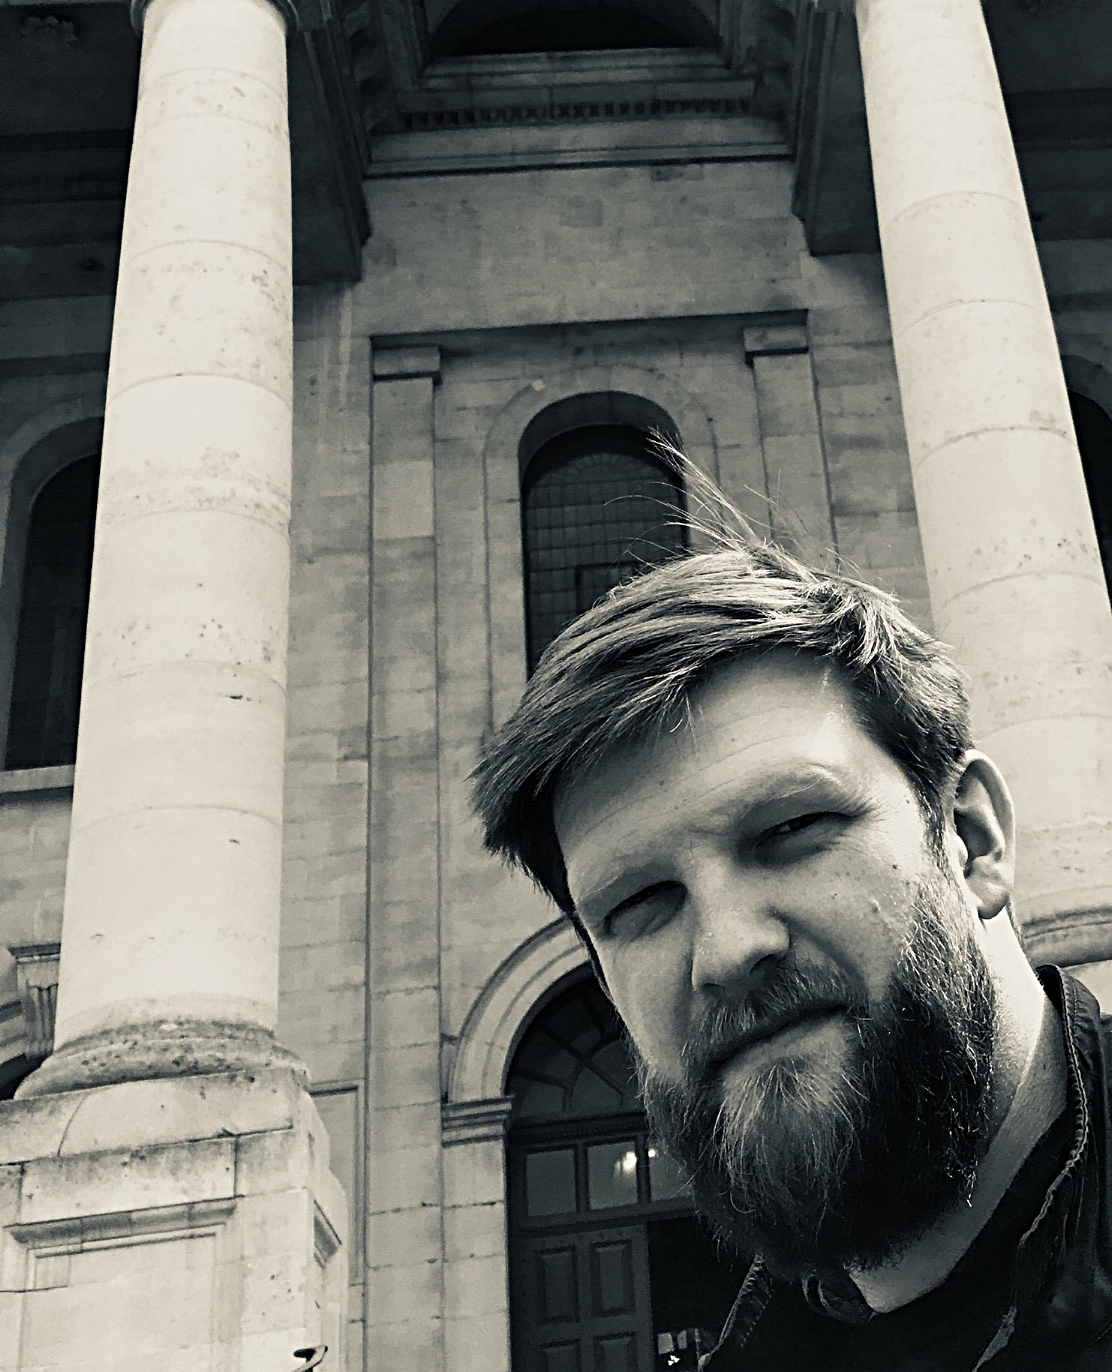 """The Root and the Crown, as performed by Crash Ensemble (Killian Farrell, conductor) at Free State 9, National Concert Hall, Dublin, March 2016: - """"Colour and atmospherics came to the fore completely in Garrett Sholdice's The Root and the Crown. Everything seemed to be derived from the varying presentation of about two chord-types. This was a piece with massive repetition or with none, depending how close you listened in, and it really repaid close listening. It is hard to produce such satisfying music with scant recourse to traditionally perceived line, counterpoint or functional harmony. What was working tirelessly through this piece was subtle balance of the voicing and colour of chords, so that the listener could not baulk as the piece used black dissonance here, and white diatonic sets there, often spread over the whole available range."""" – John McLachlan, The Journal of Music"""